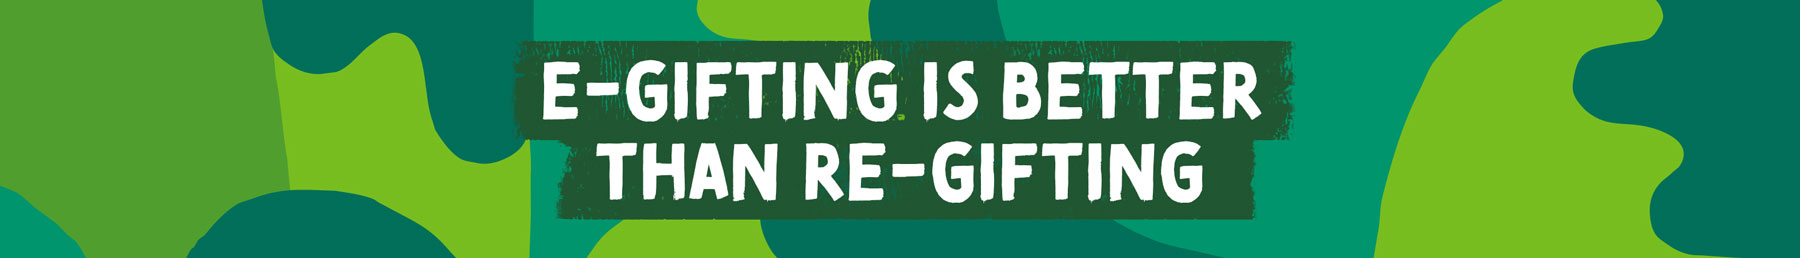 Green camo banner with 'E-gifting is better than re-gifting' text.